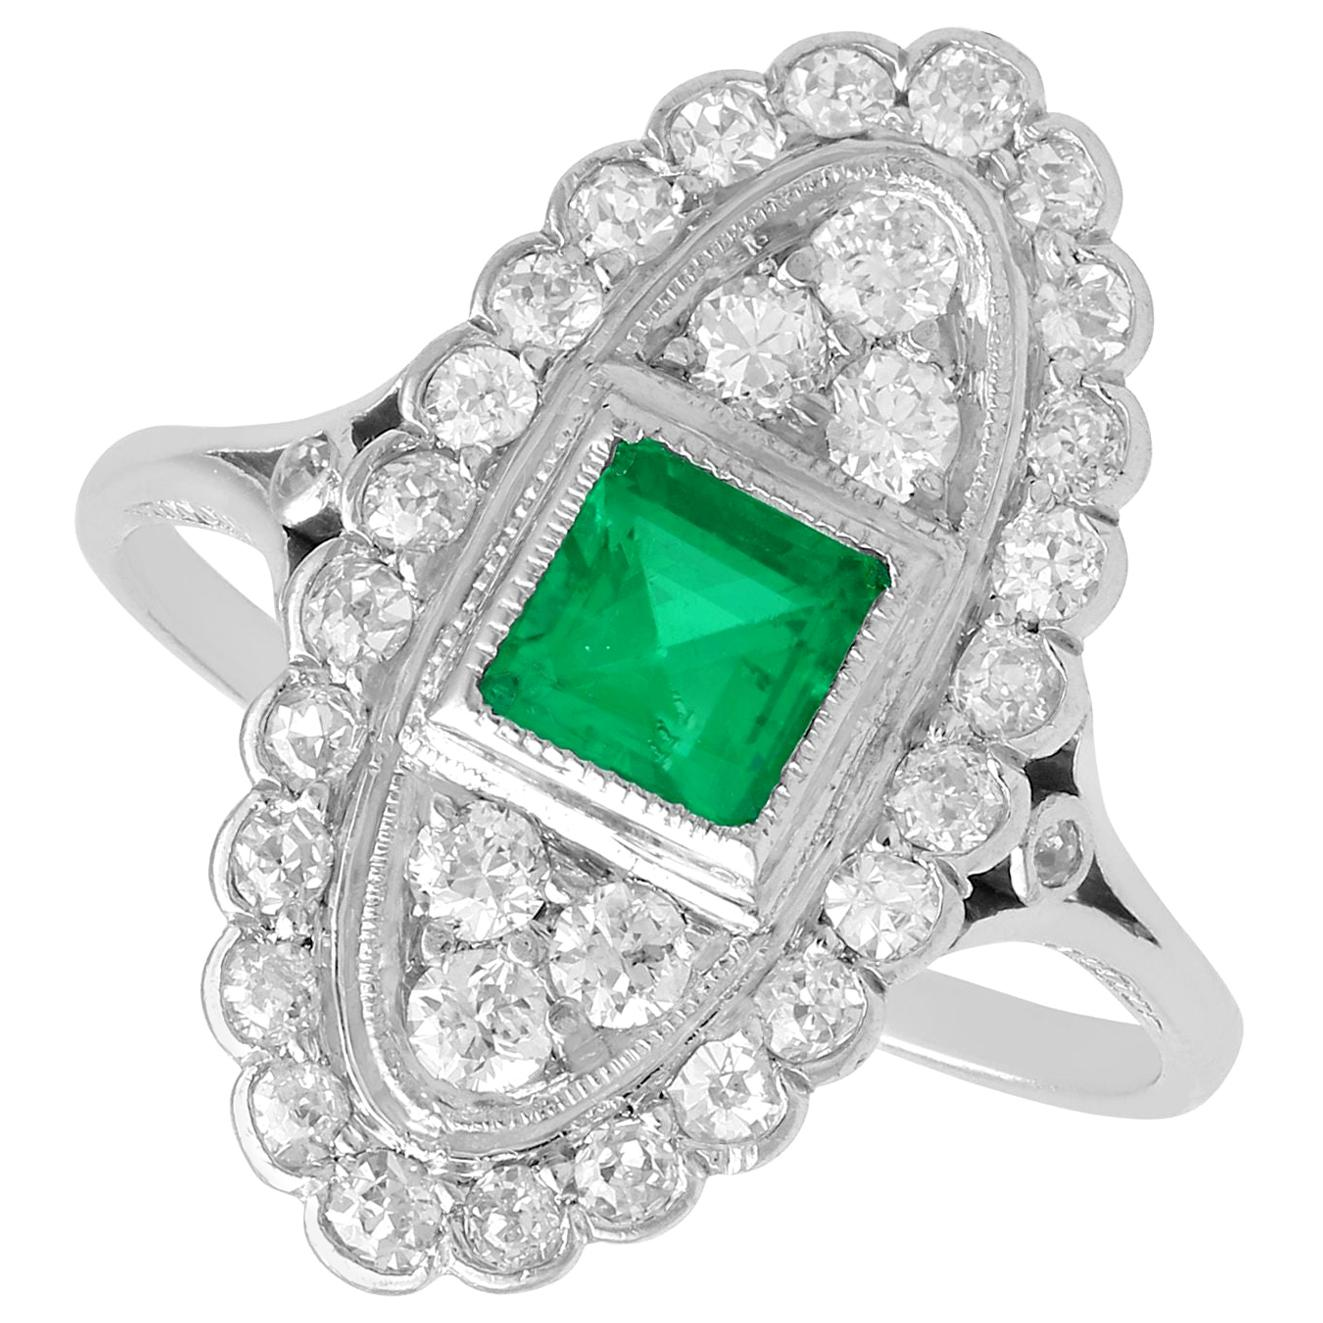 Antique Emerald 1.20 Carat Diamond Platinum Ring